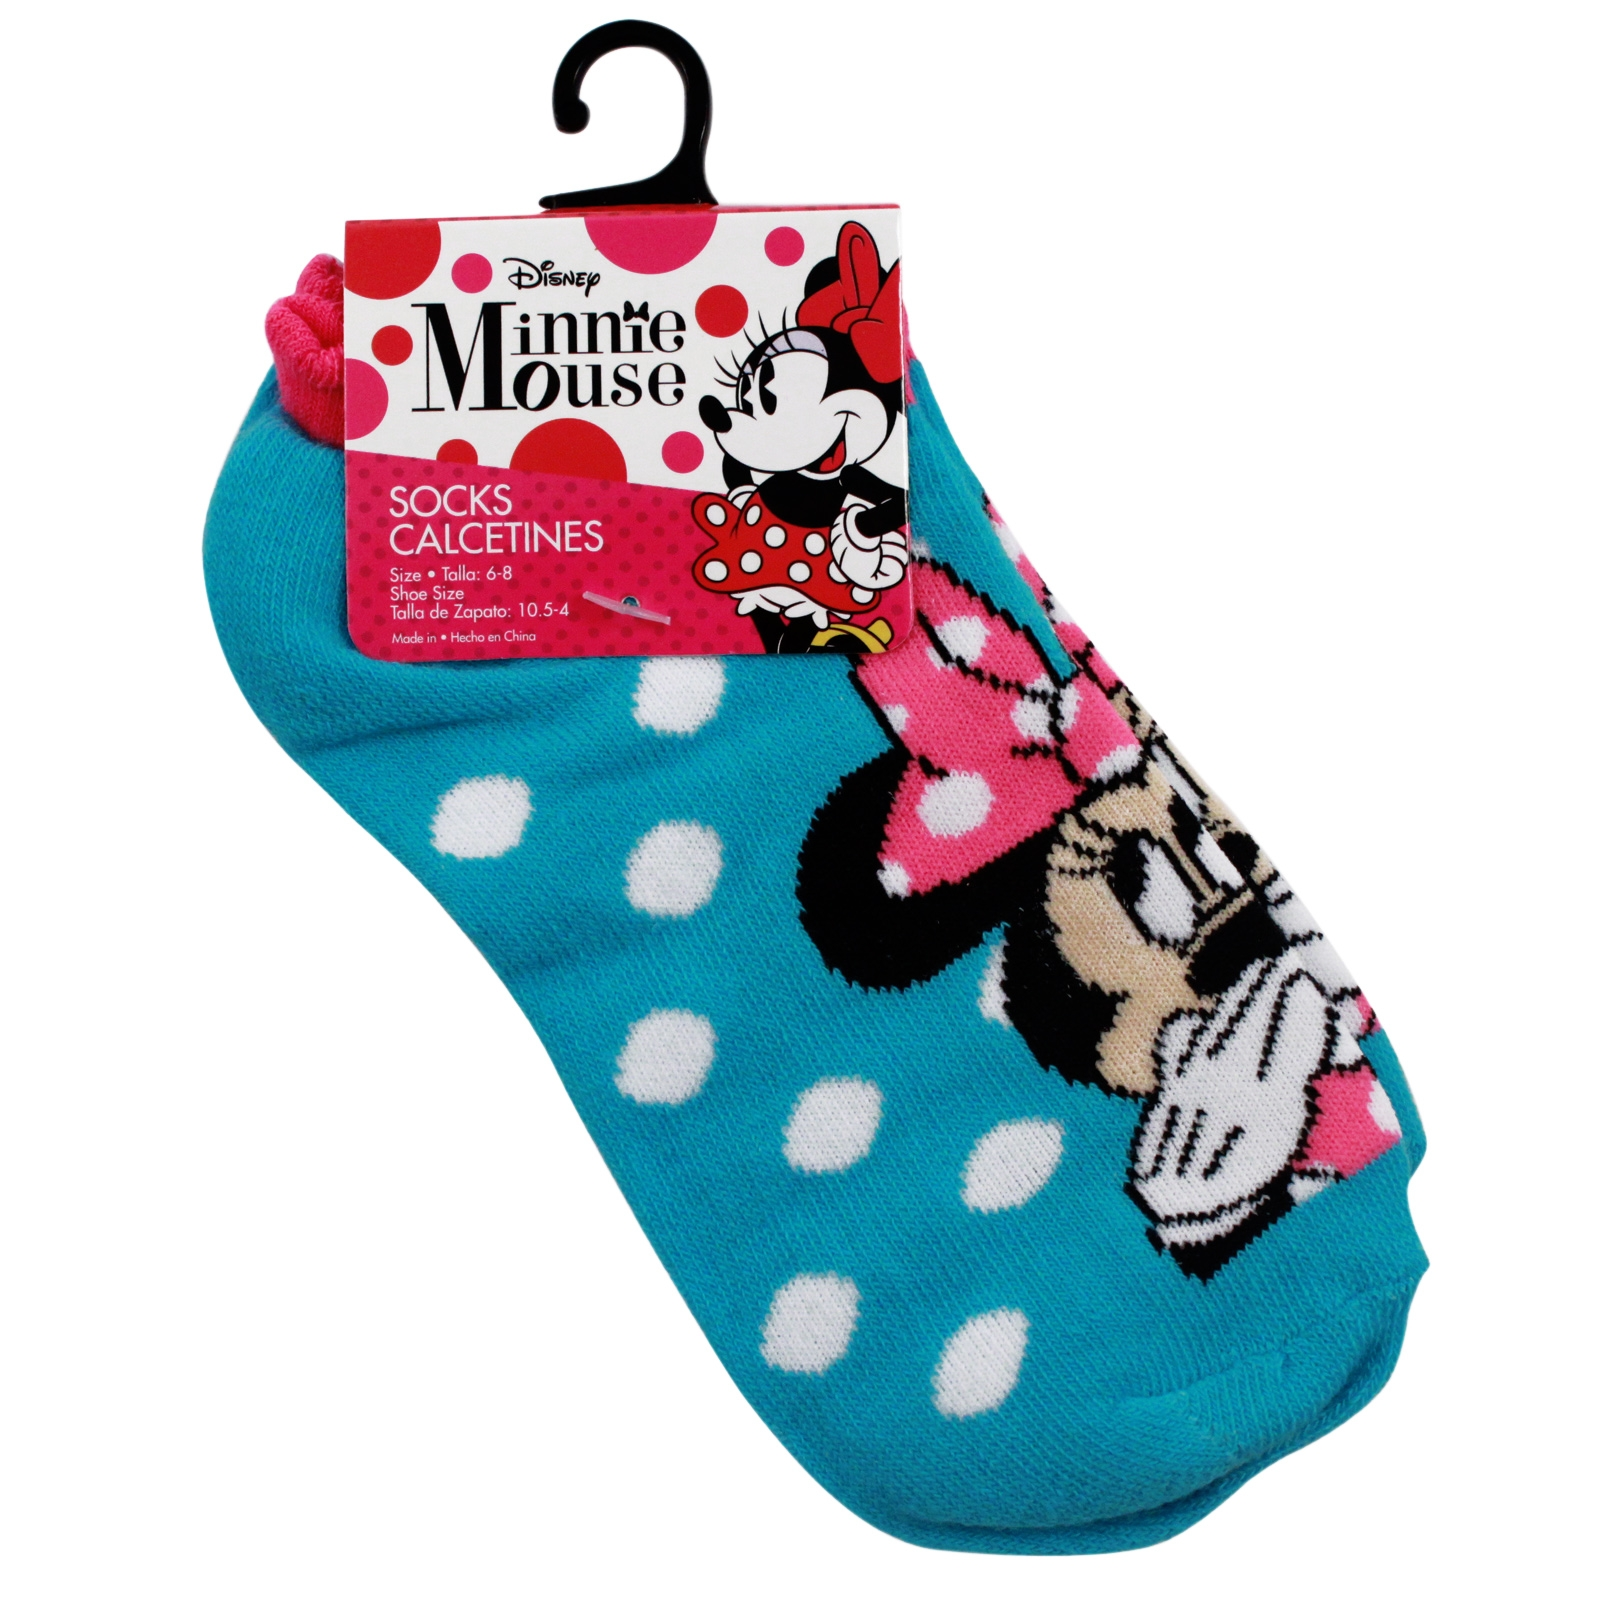 Disney Minnie Mouse Kids Ankle Socks Blue Size 6-8 disney cartoon characters mickey mouse goofy girls socks